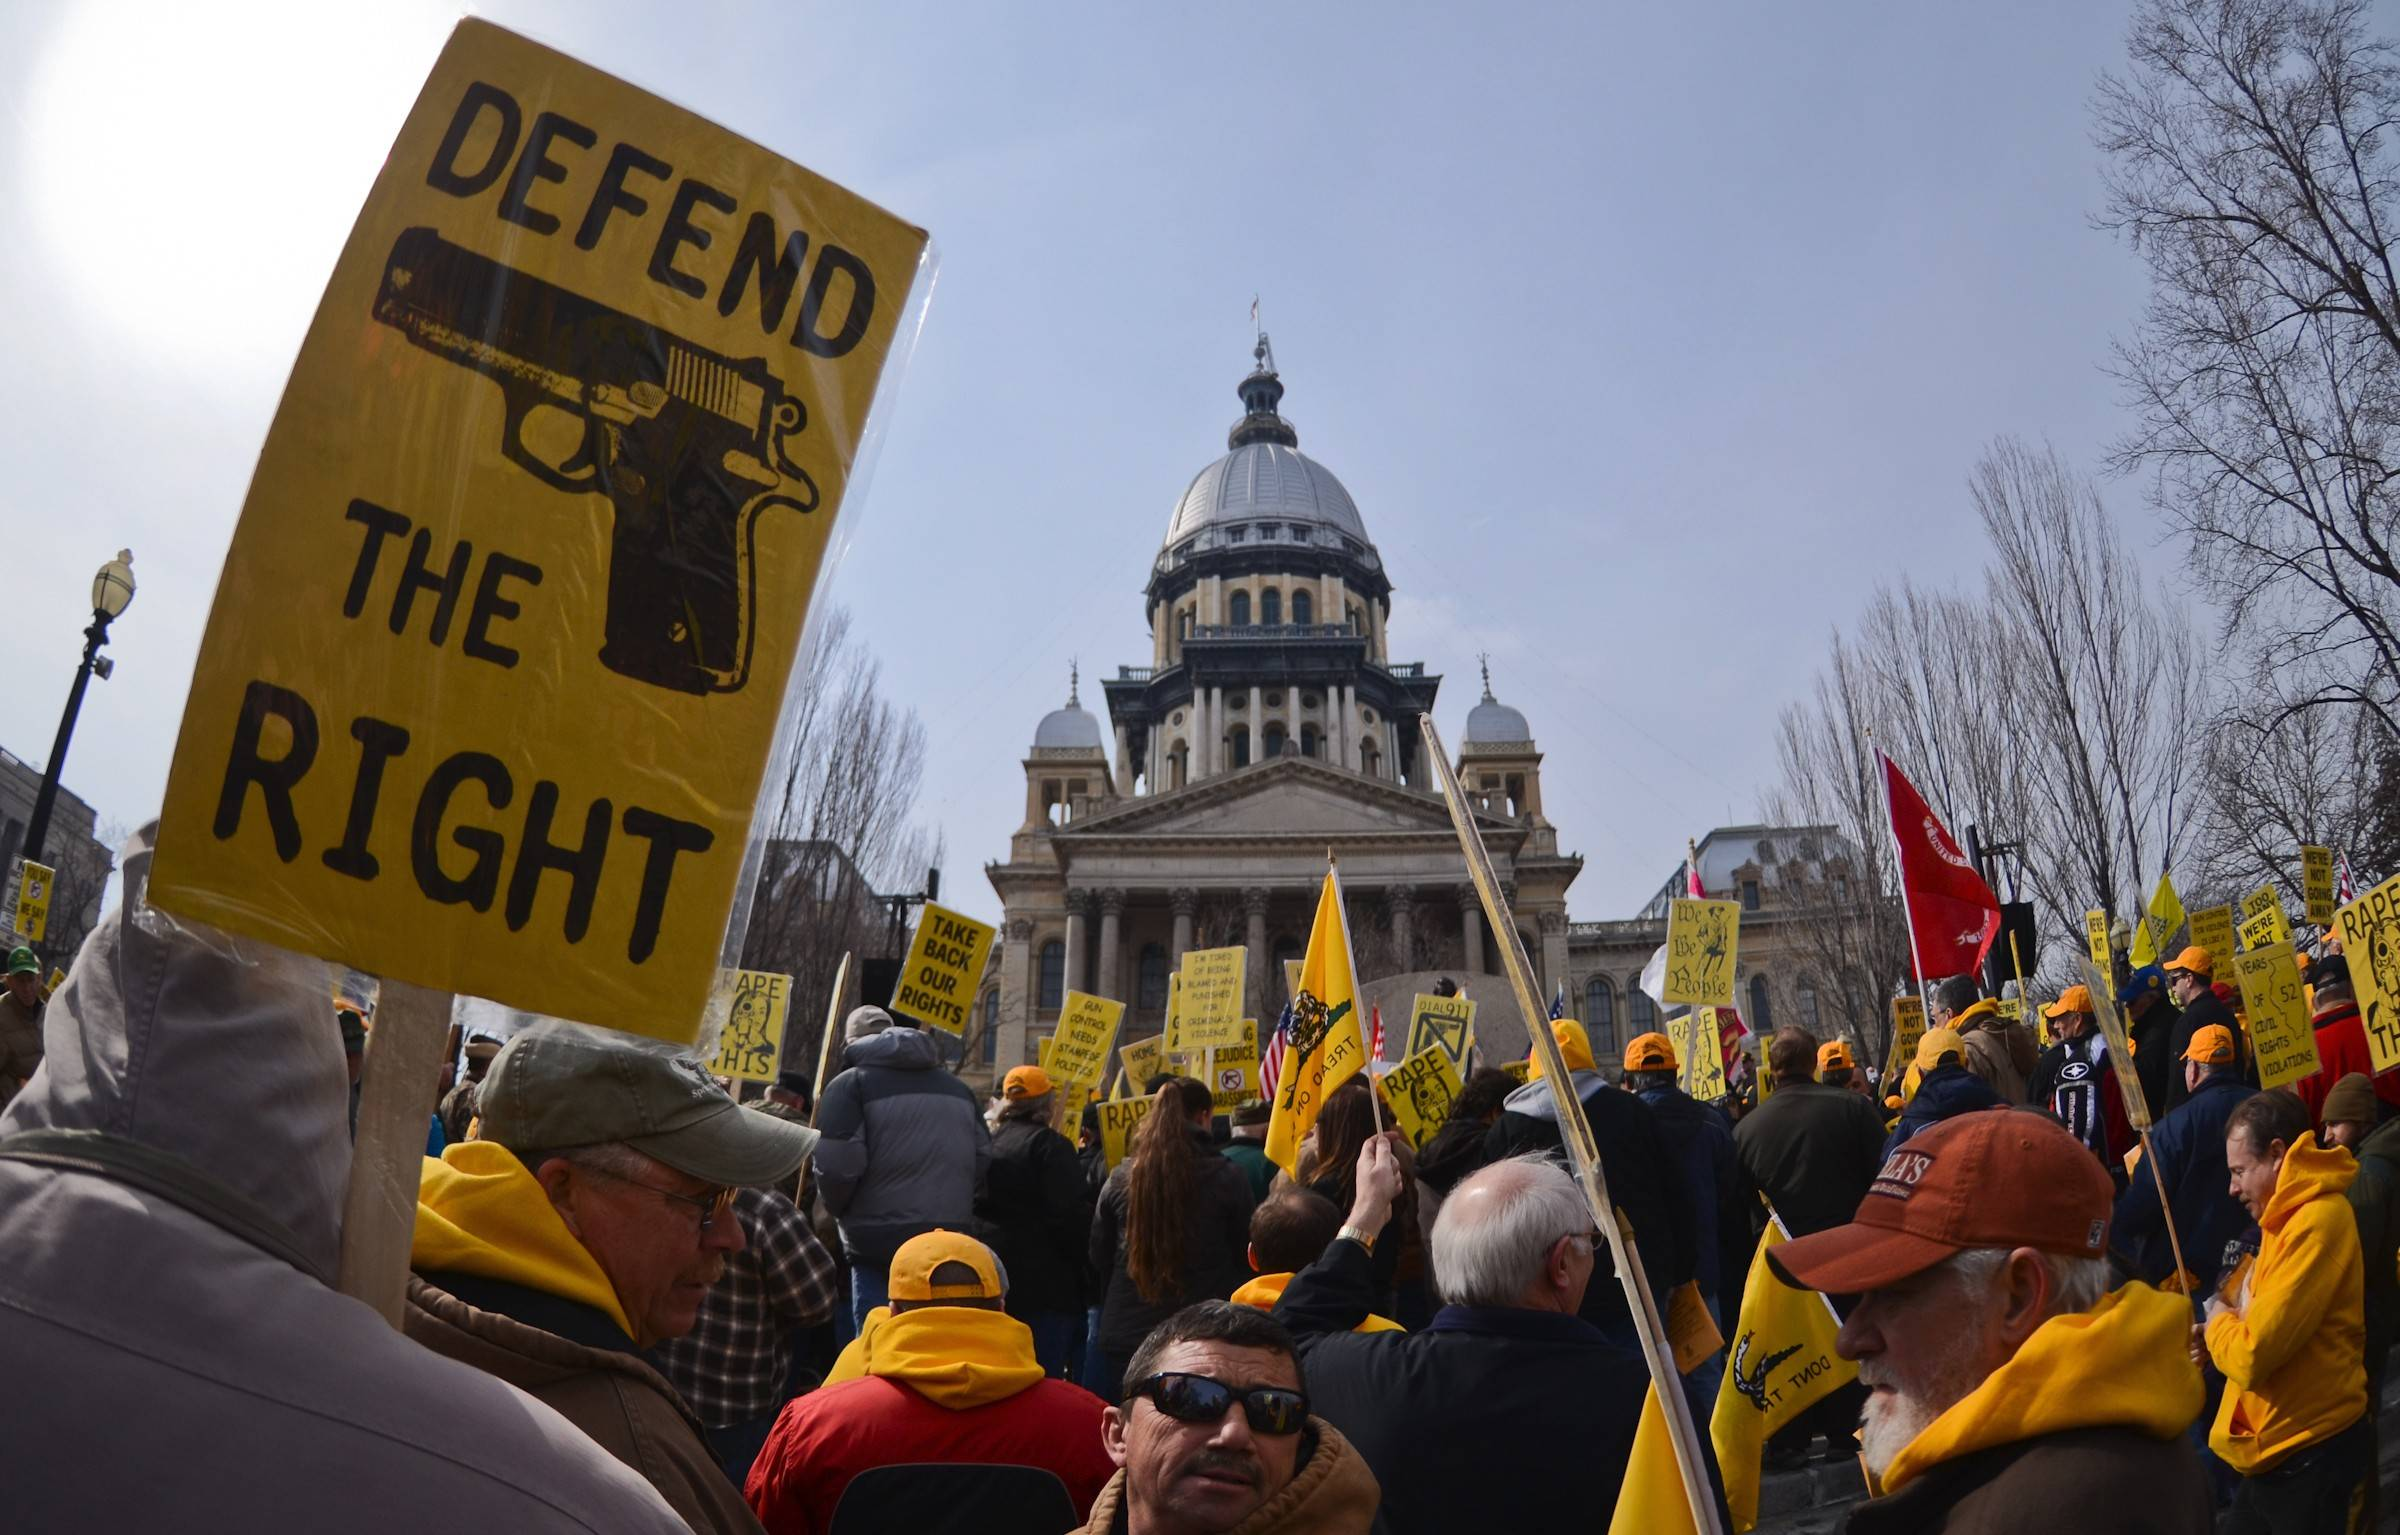 Gun owners rallied at the Illinois Capitol Wednesday, asking lawmakers to loosen concealed carry rules.